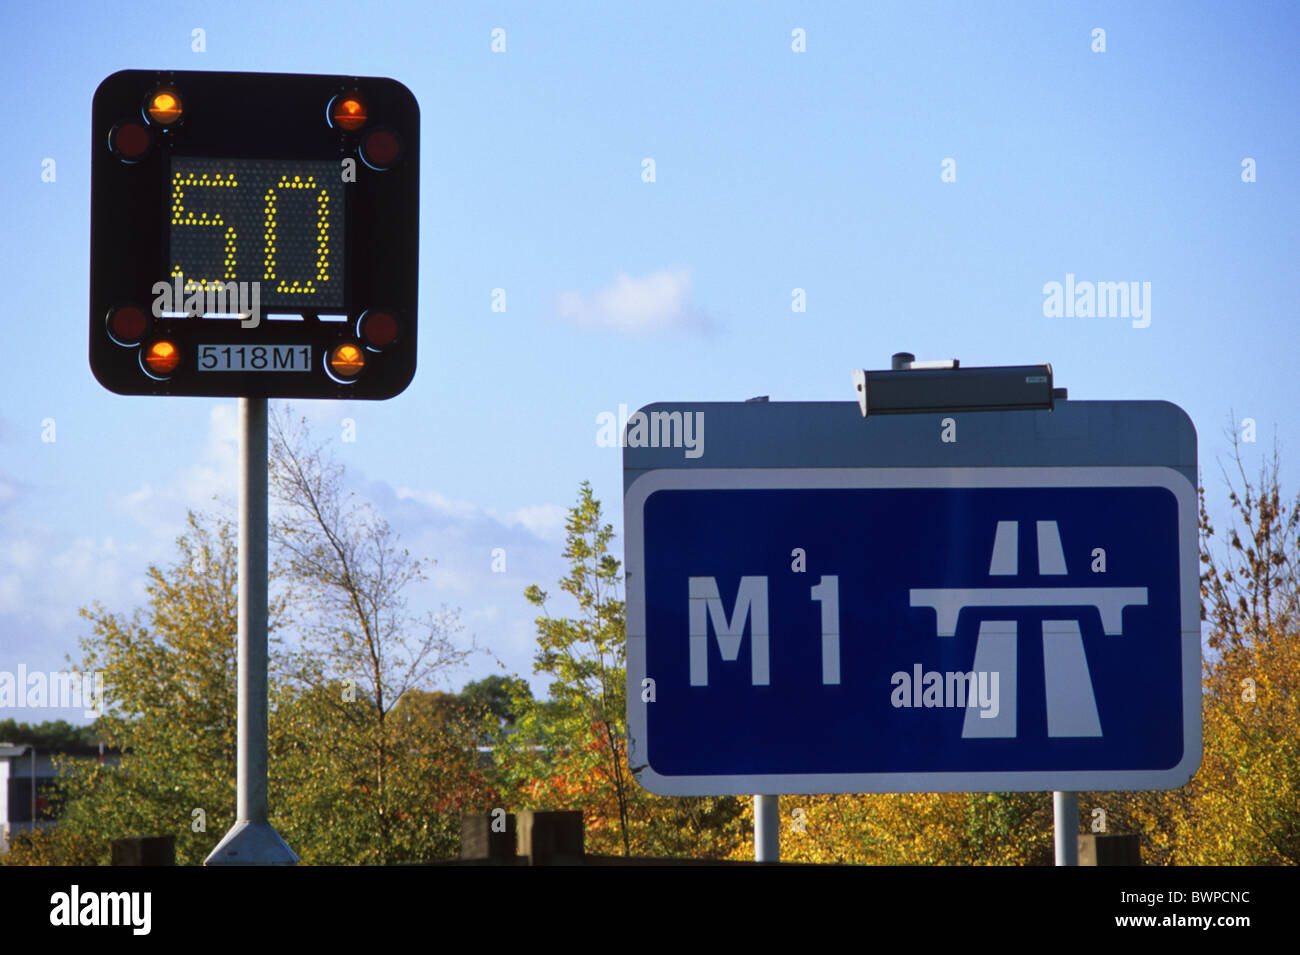 flashing warning sign of reduced speed limit on M1 motorway due to congestion near Leeds Yorkshire UK Stock Photo